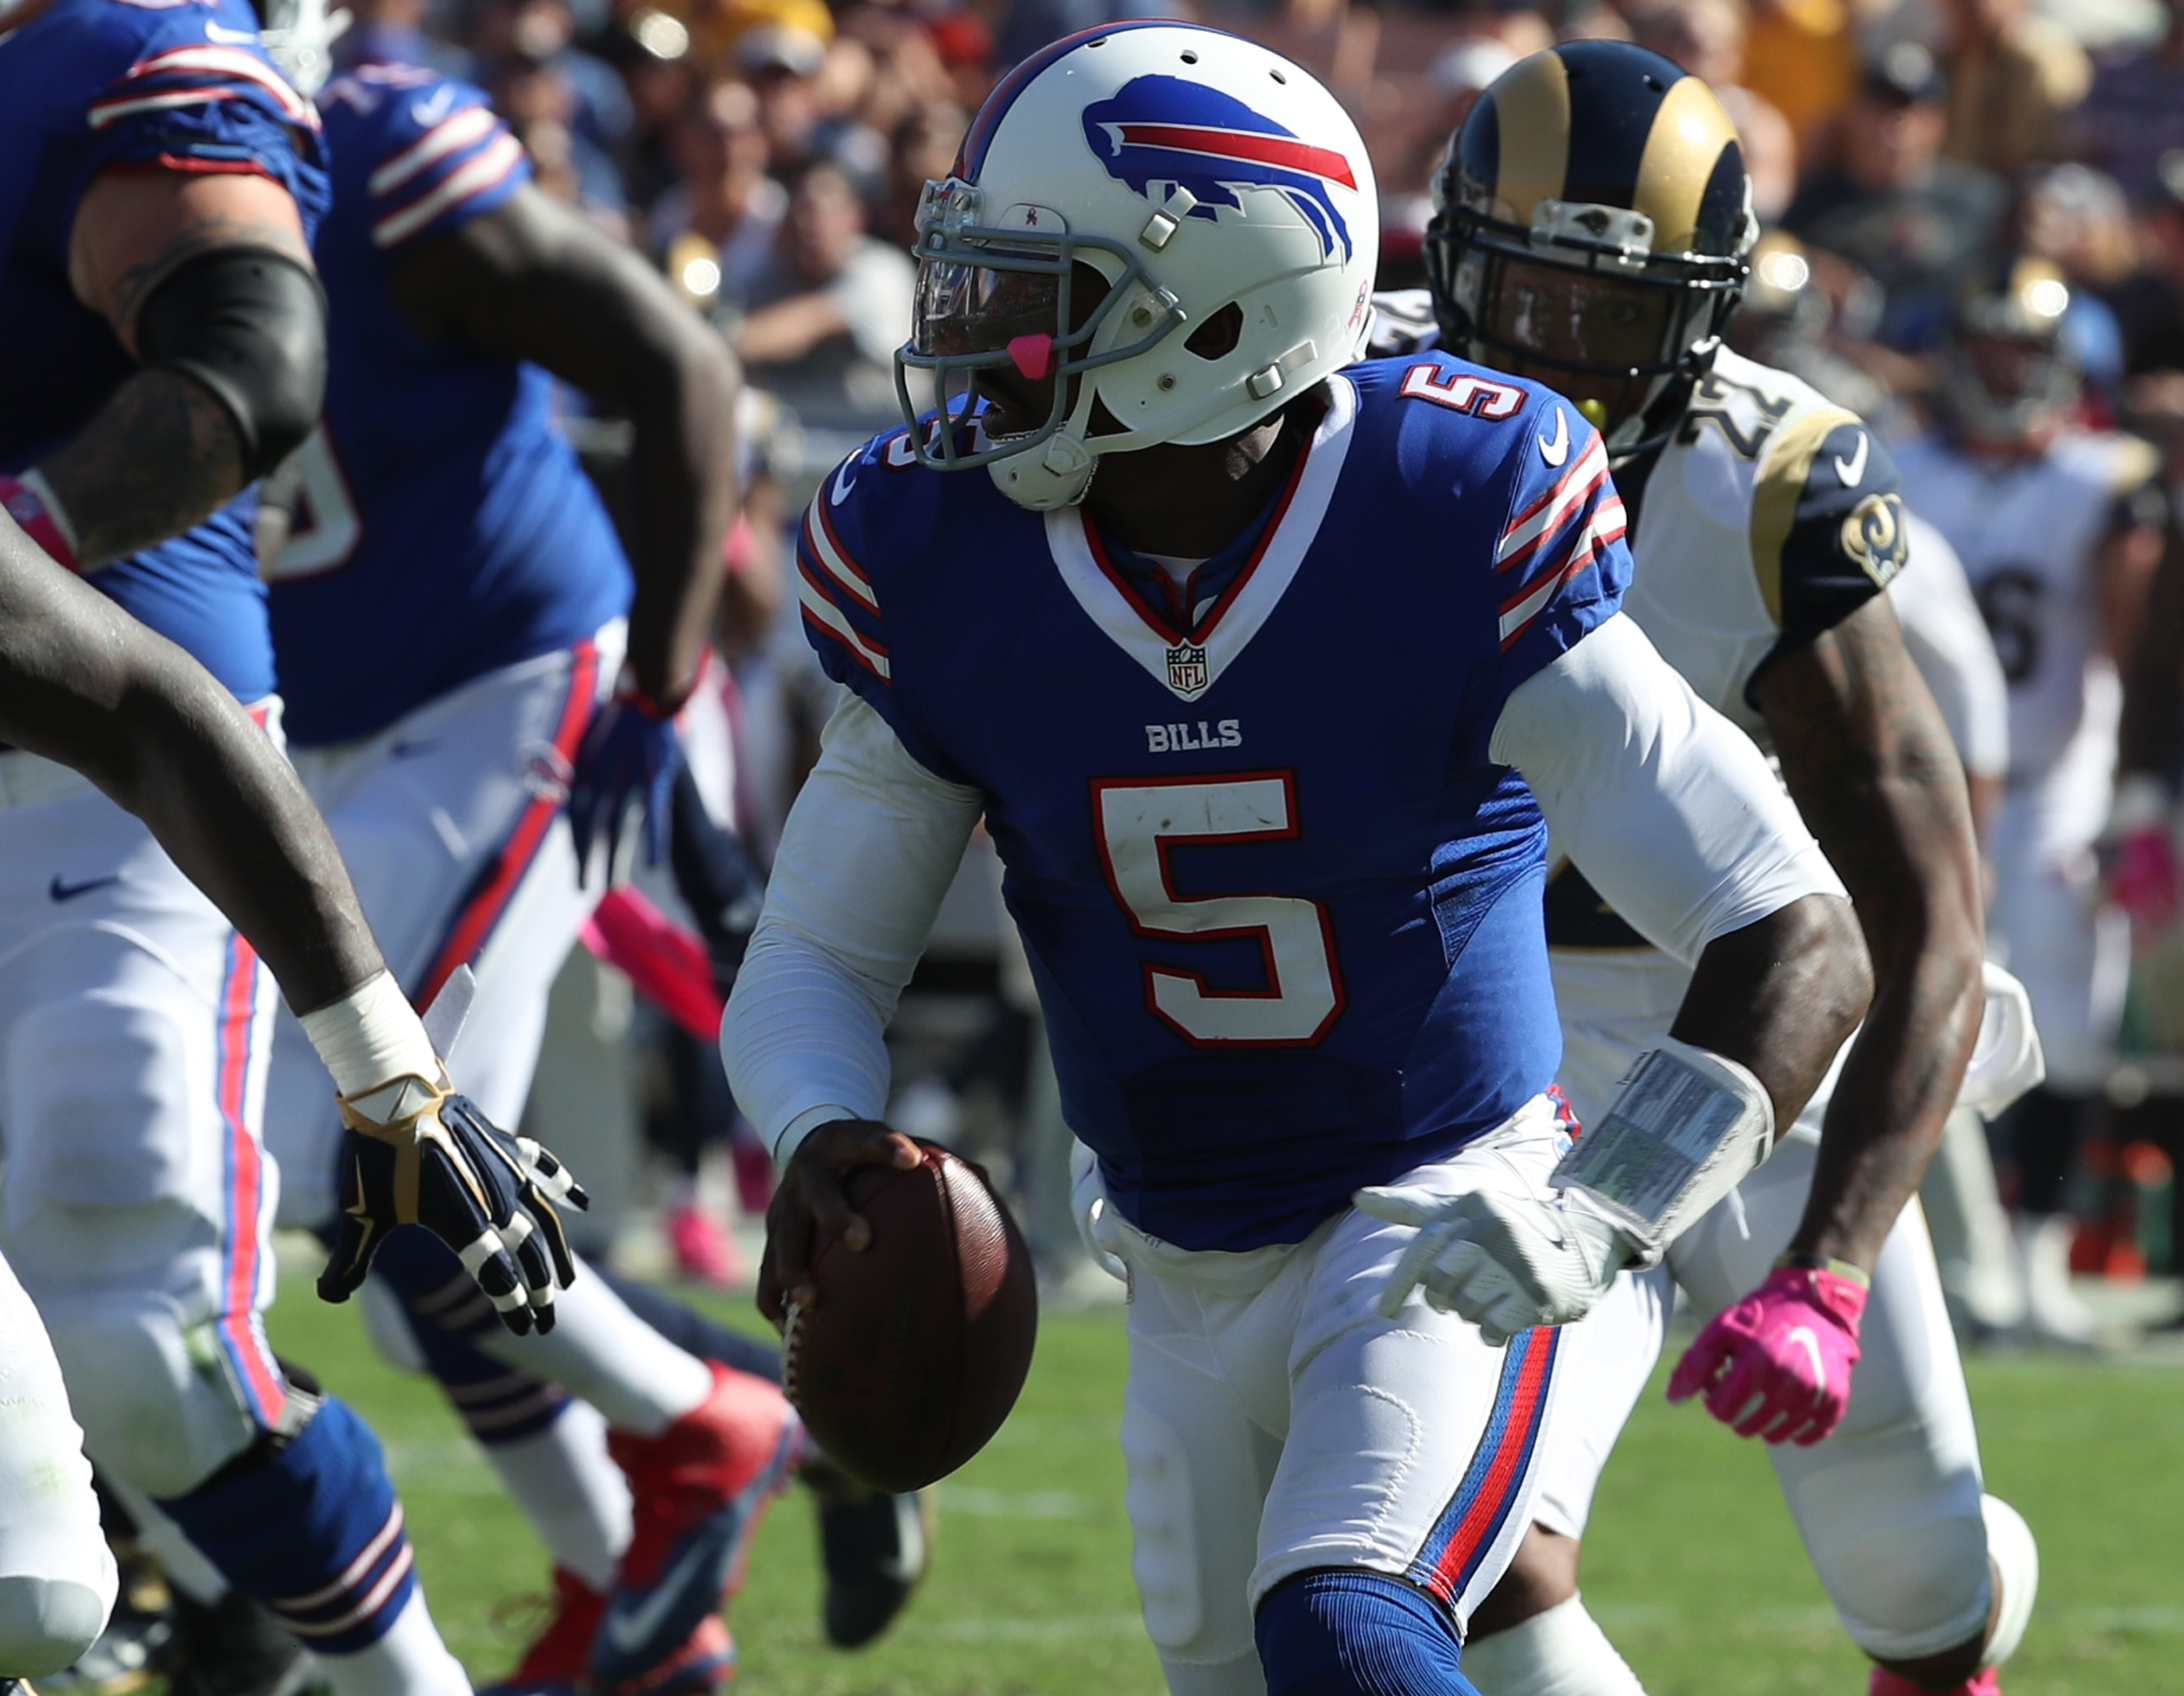 Buffalo Bills quarterback Tyrod Taylor (5) in the third quarter at Los Angeles Memorial Colliseum in Los Angeles, CA on Sunday, Oct. 9, 2016.  (James P. McCoy/ Buffalo News)